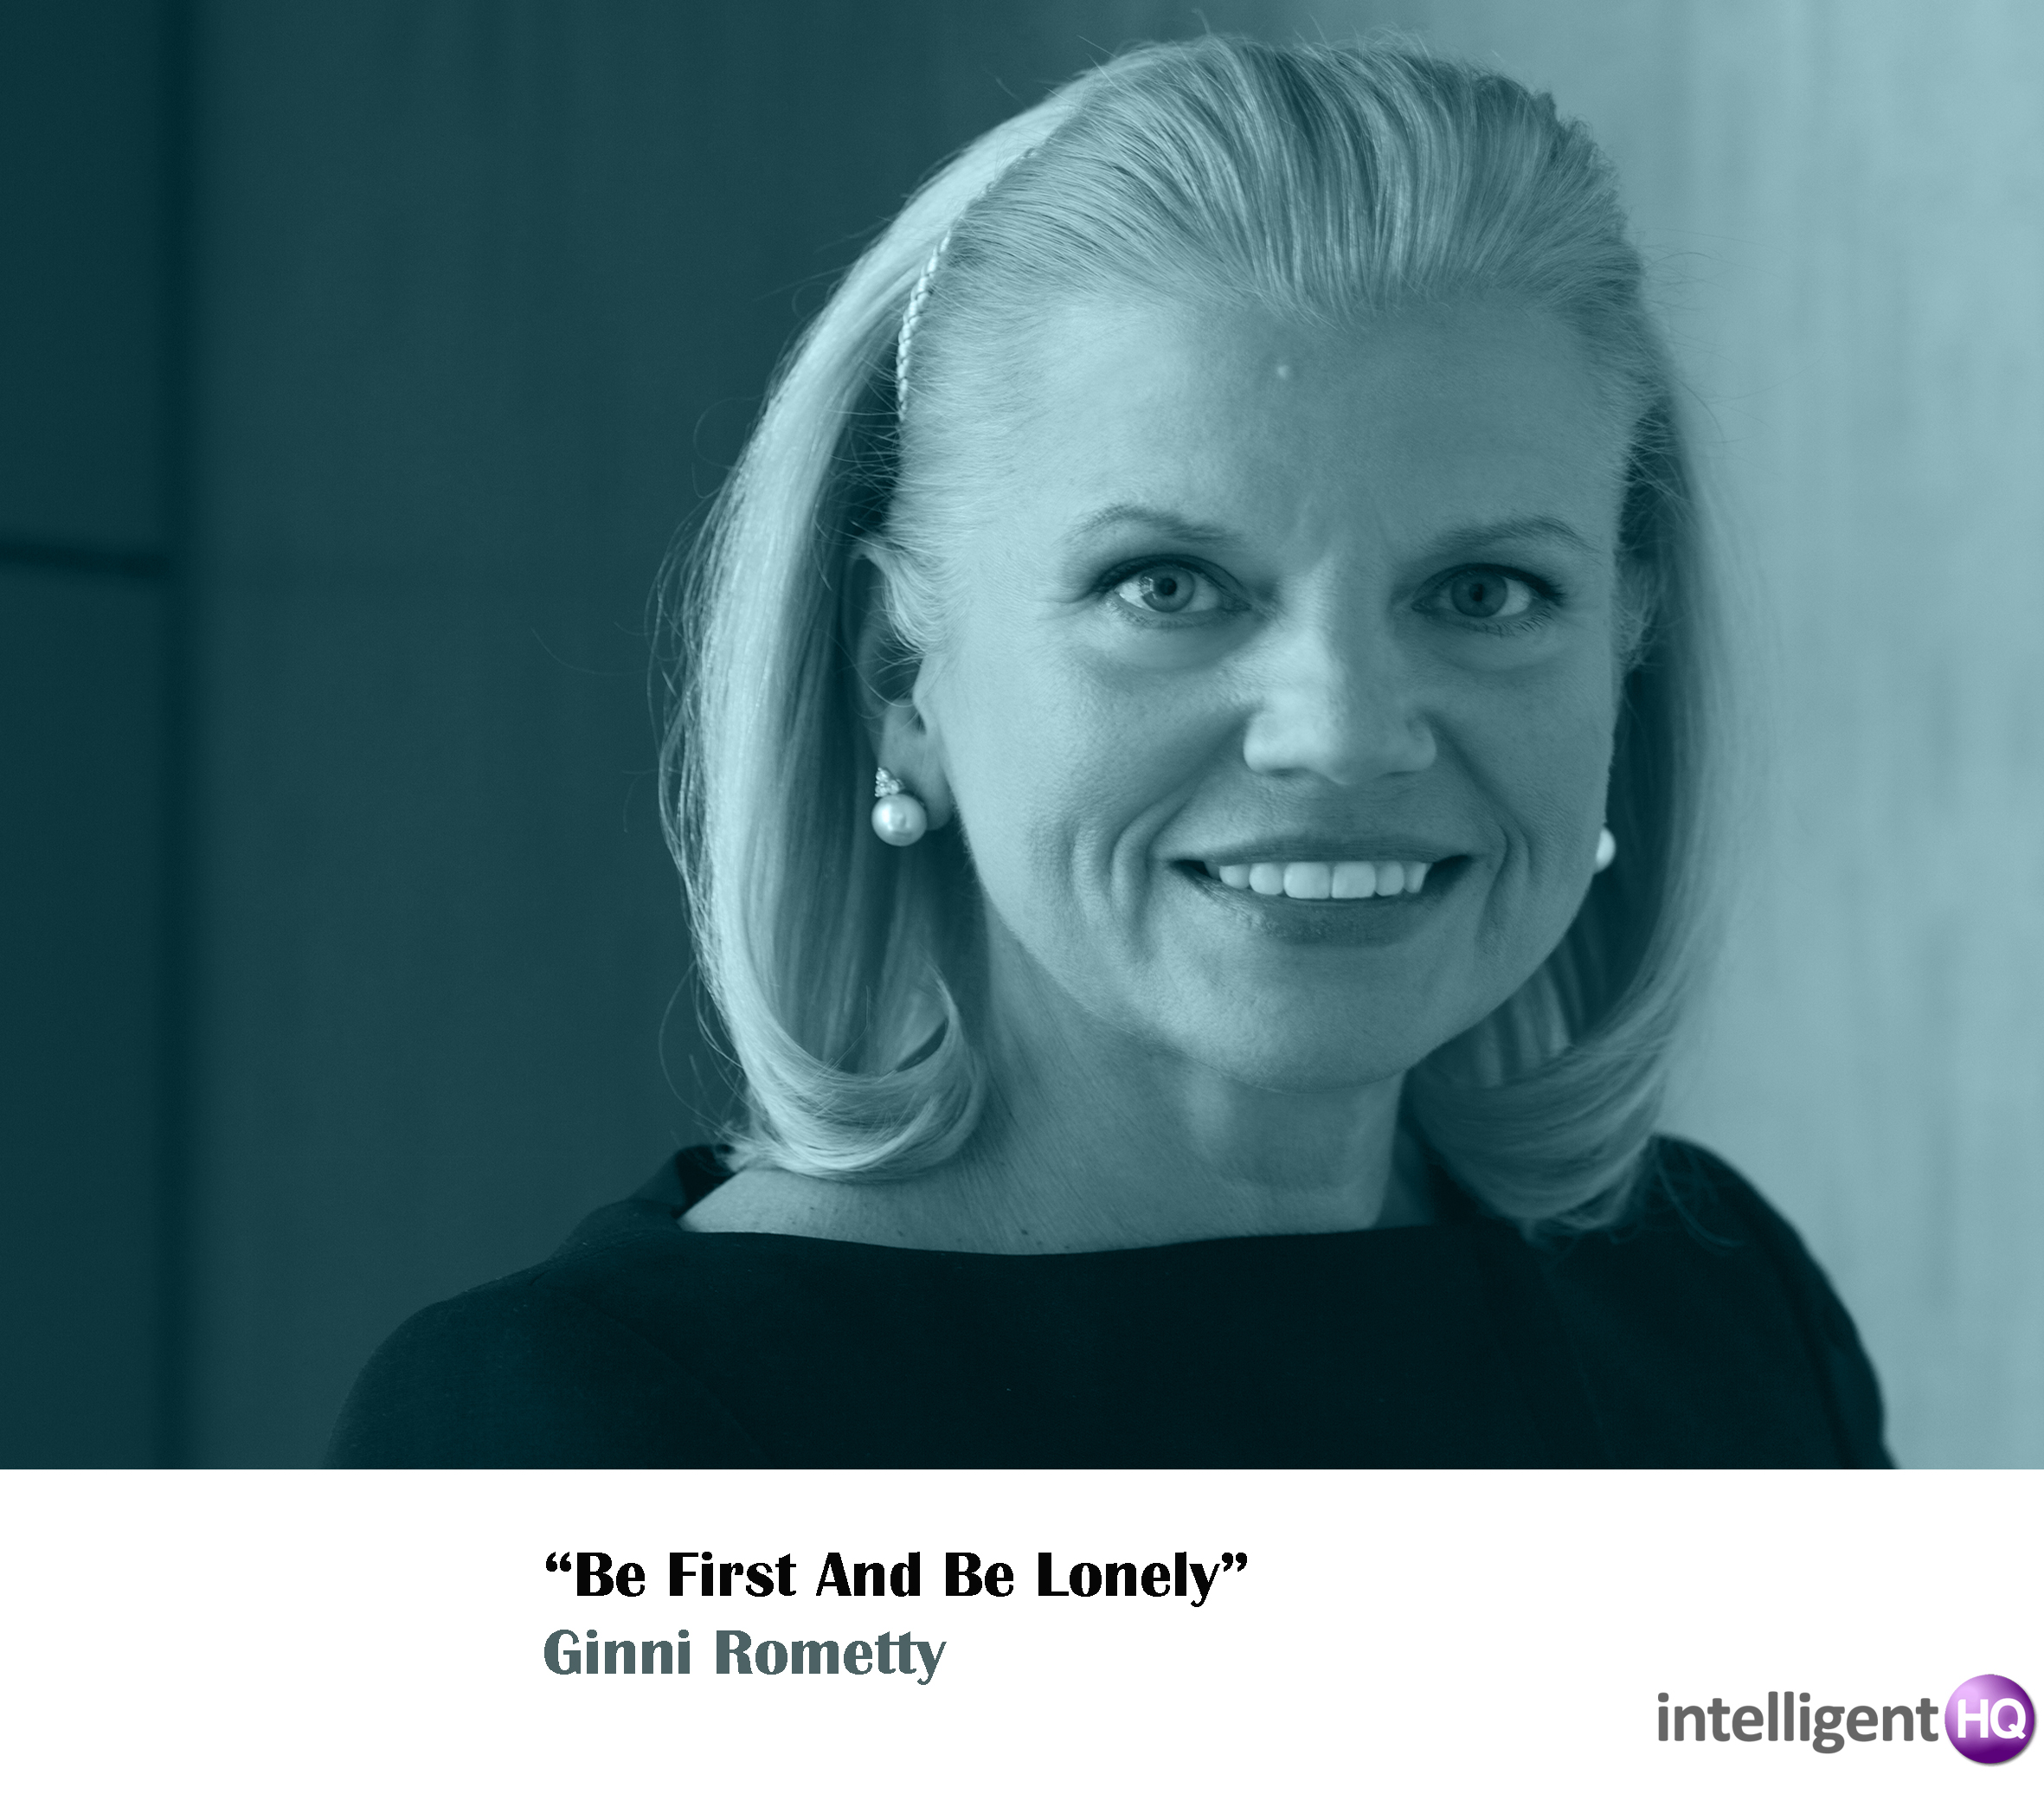 Quote by Ginni Rometty. Intelligenthq